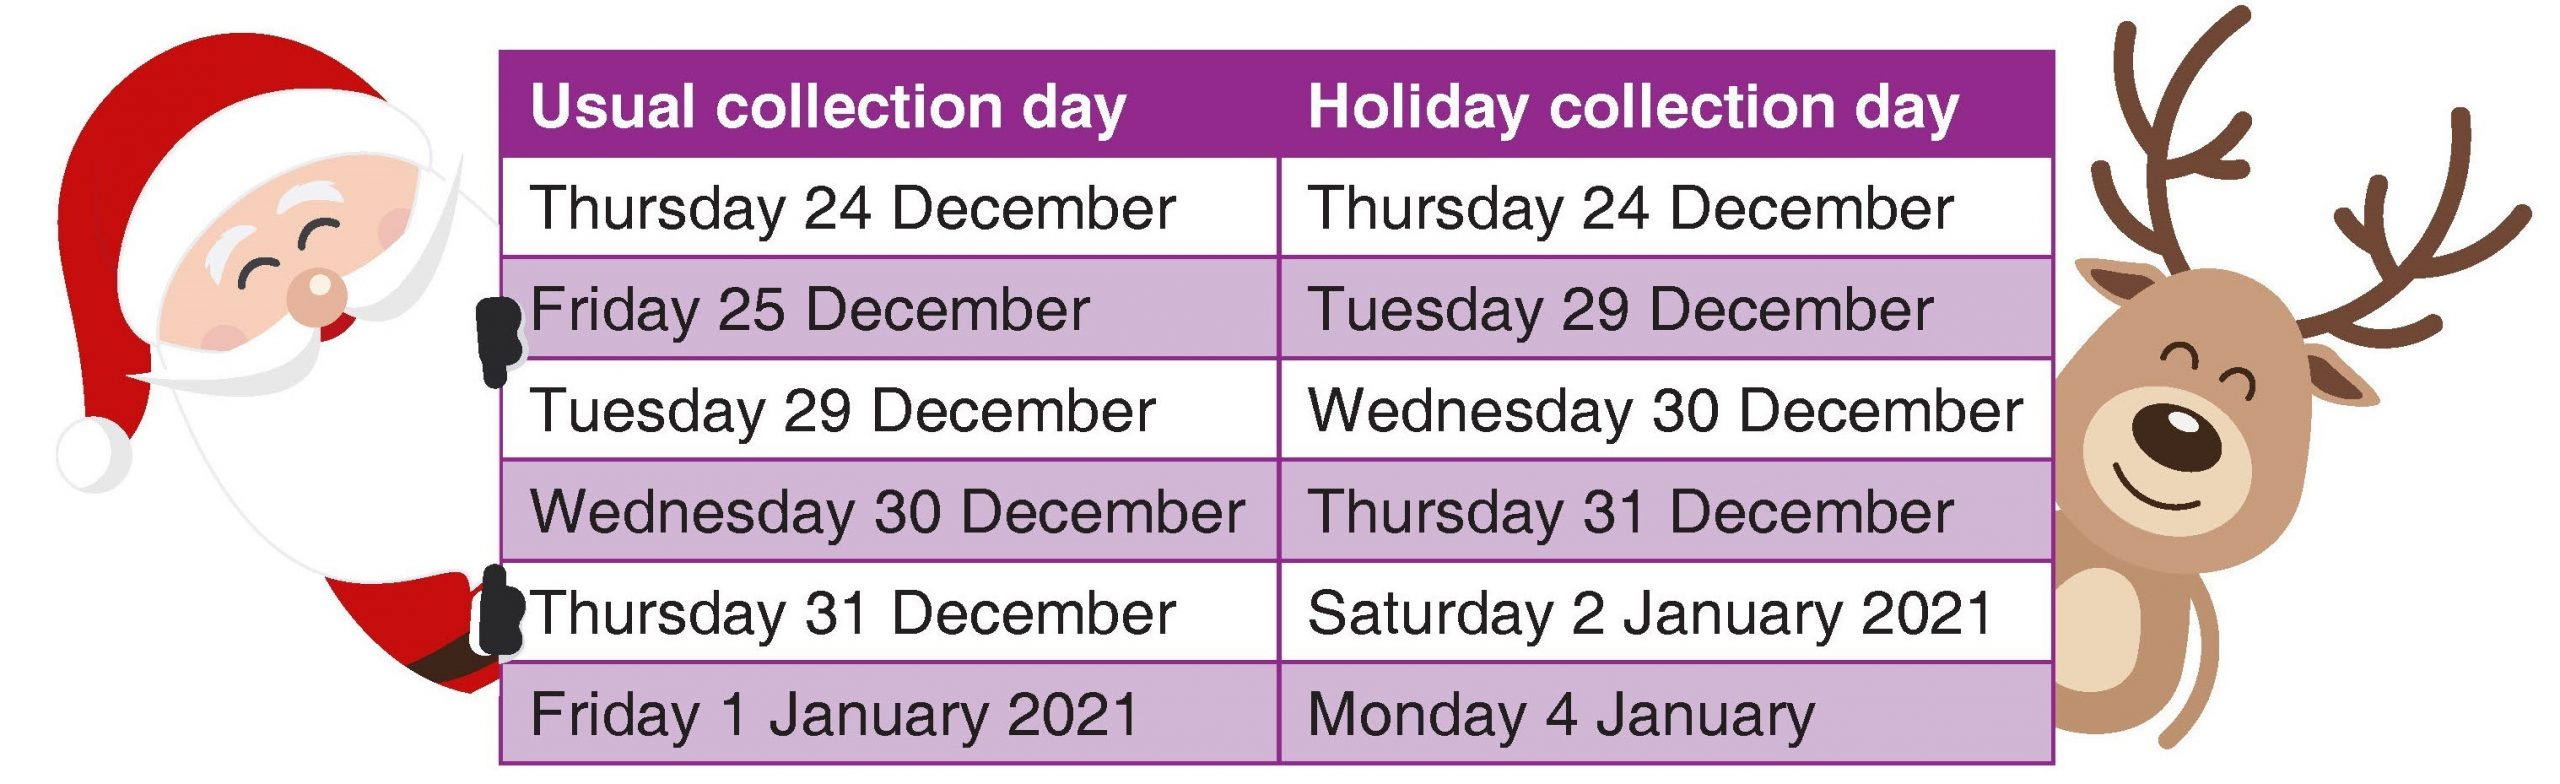 details of amended rubbish collection date image